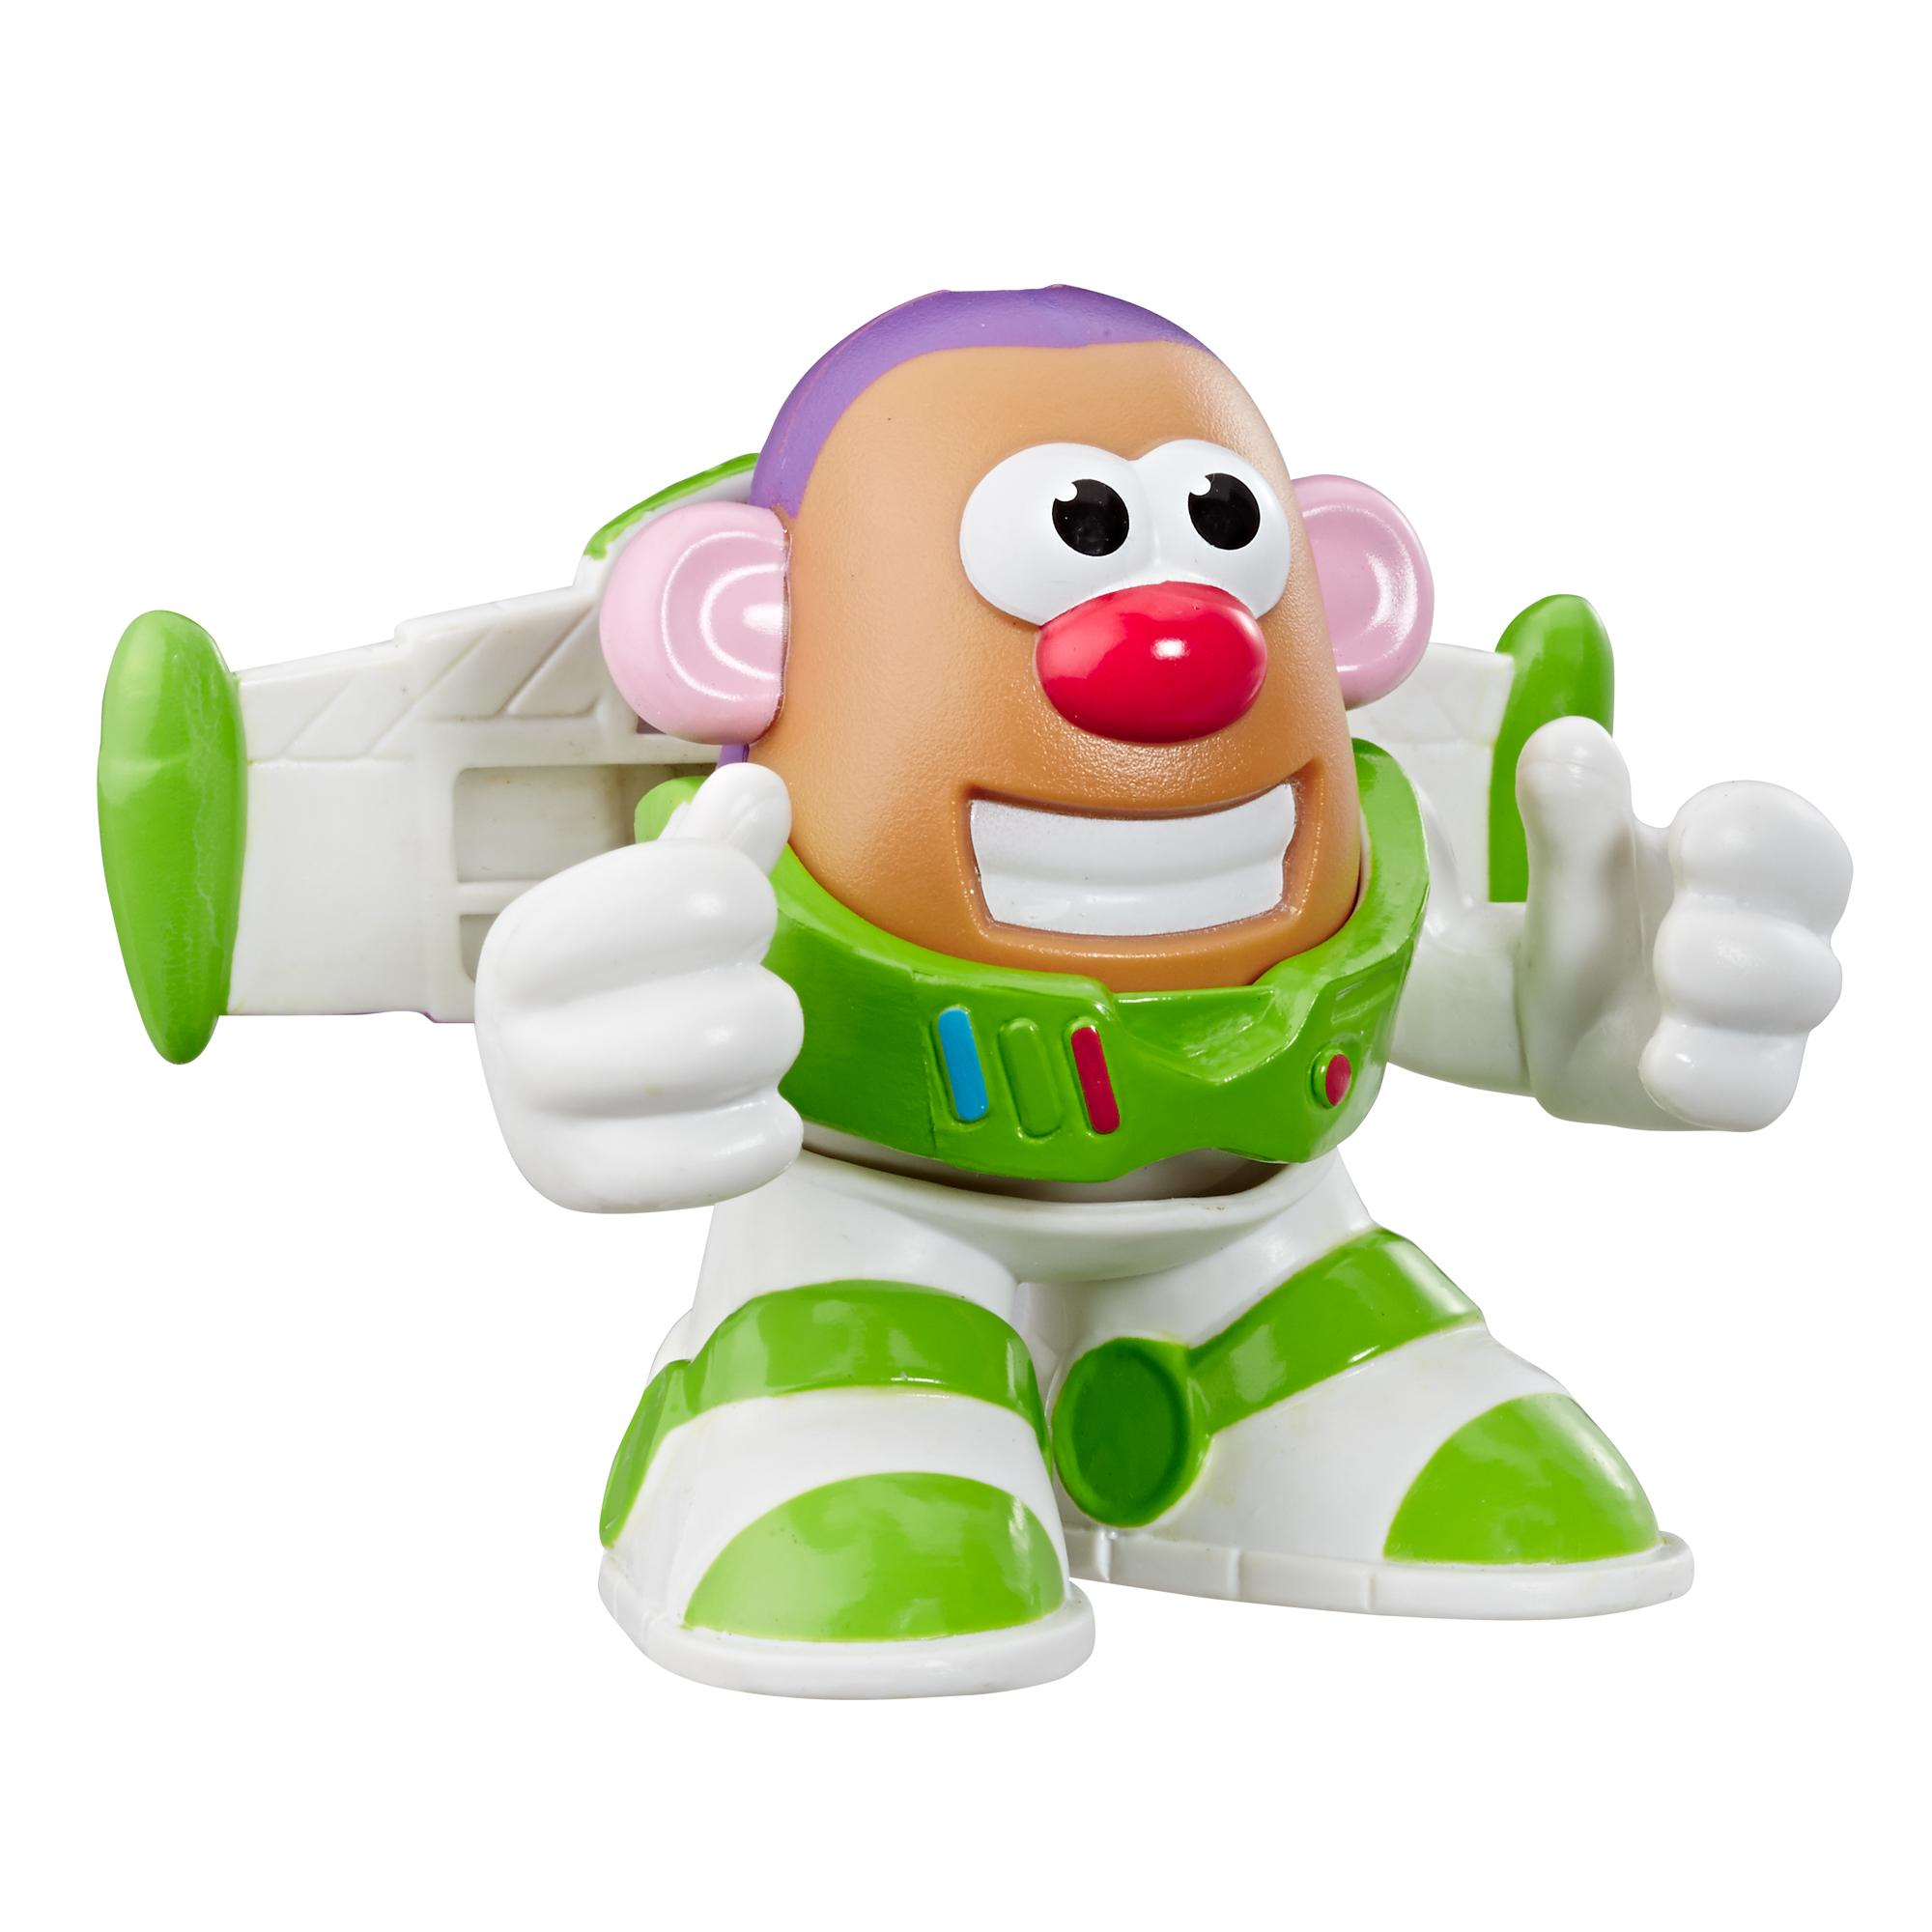 Mr. Potato Head Disney/Pixar Toy Story 4 Buzz Lightyear Mini Figure